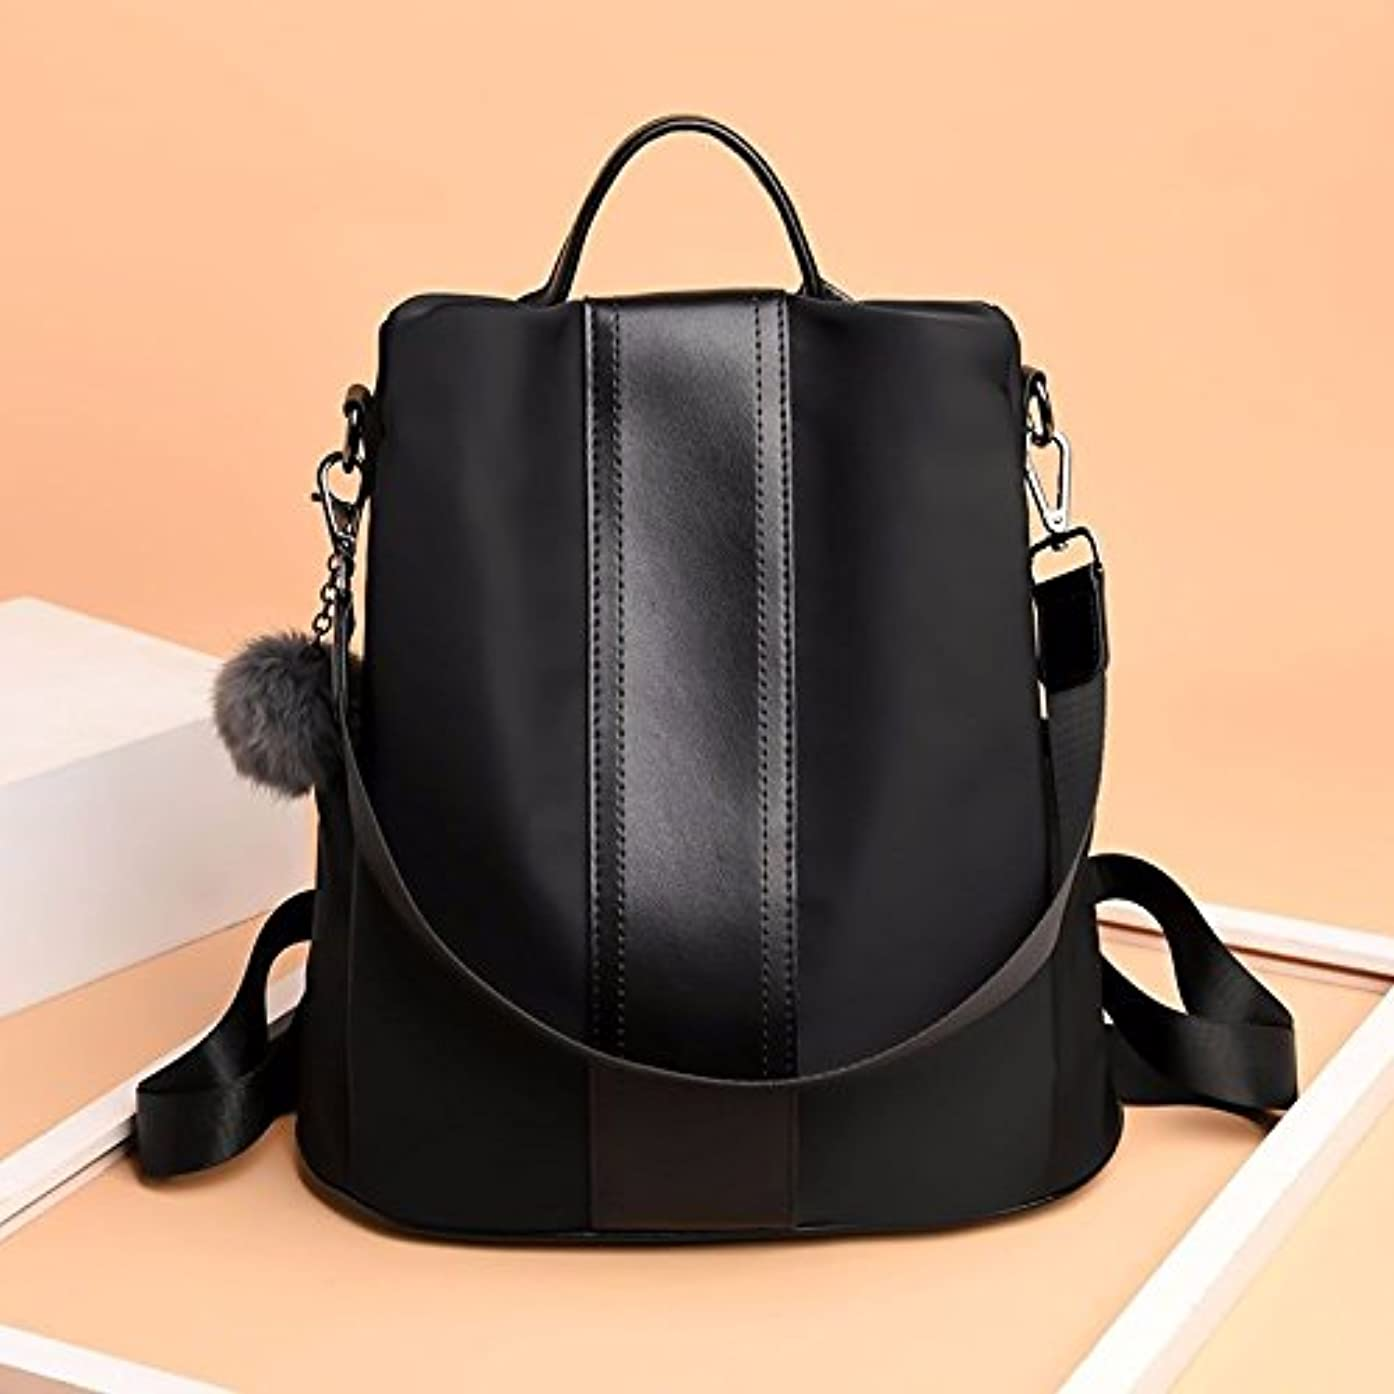 BMKWSG PU Leather Backpack Casual Daypack for Women/Girls Black